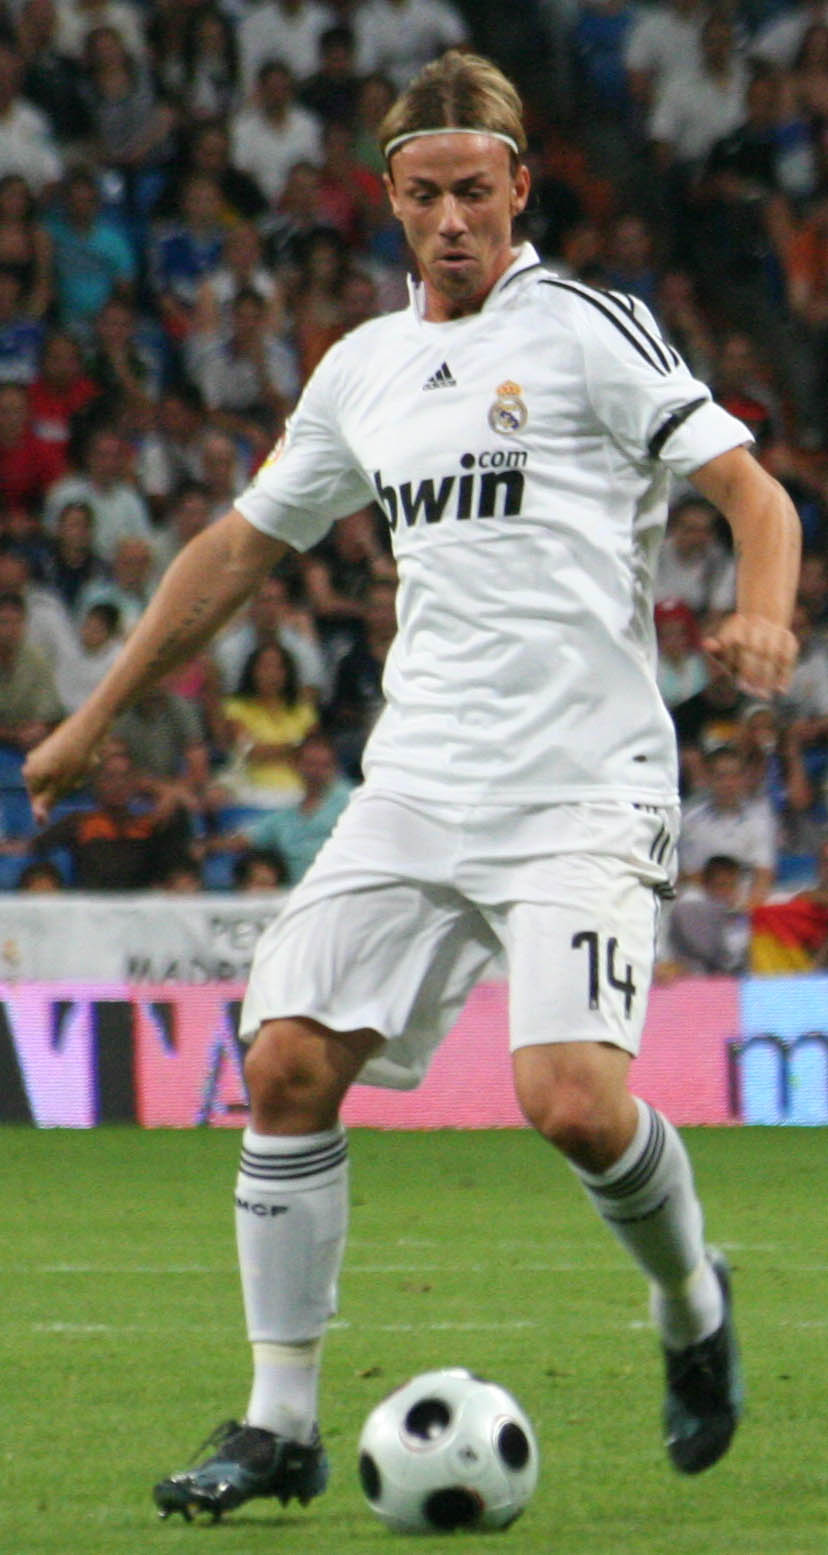 Guti in action for [[Real Madrid C.F.|Real Madrid]] in 2008